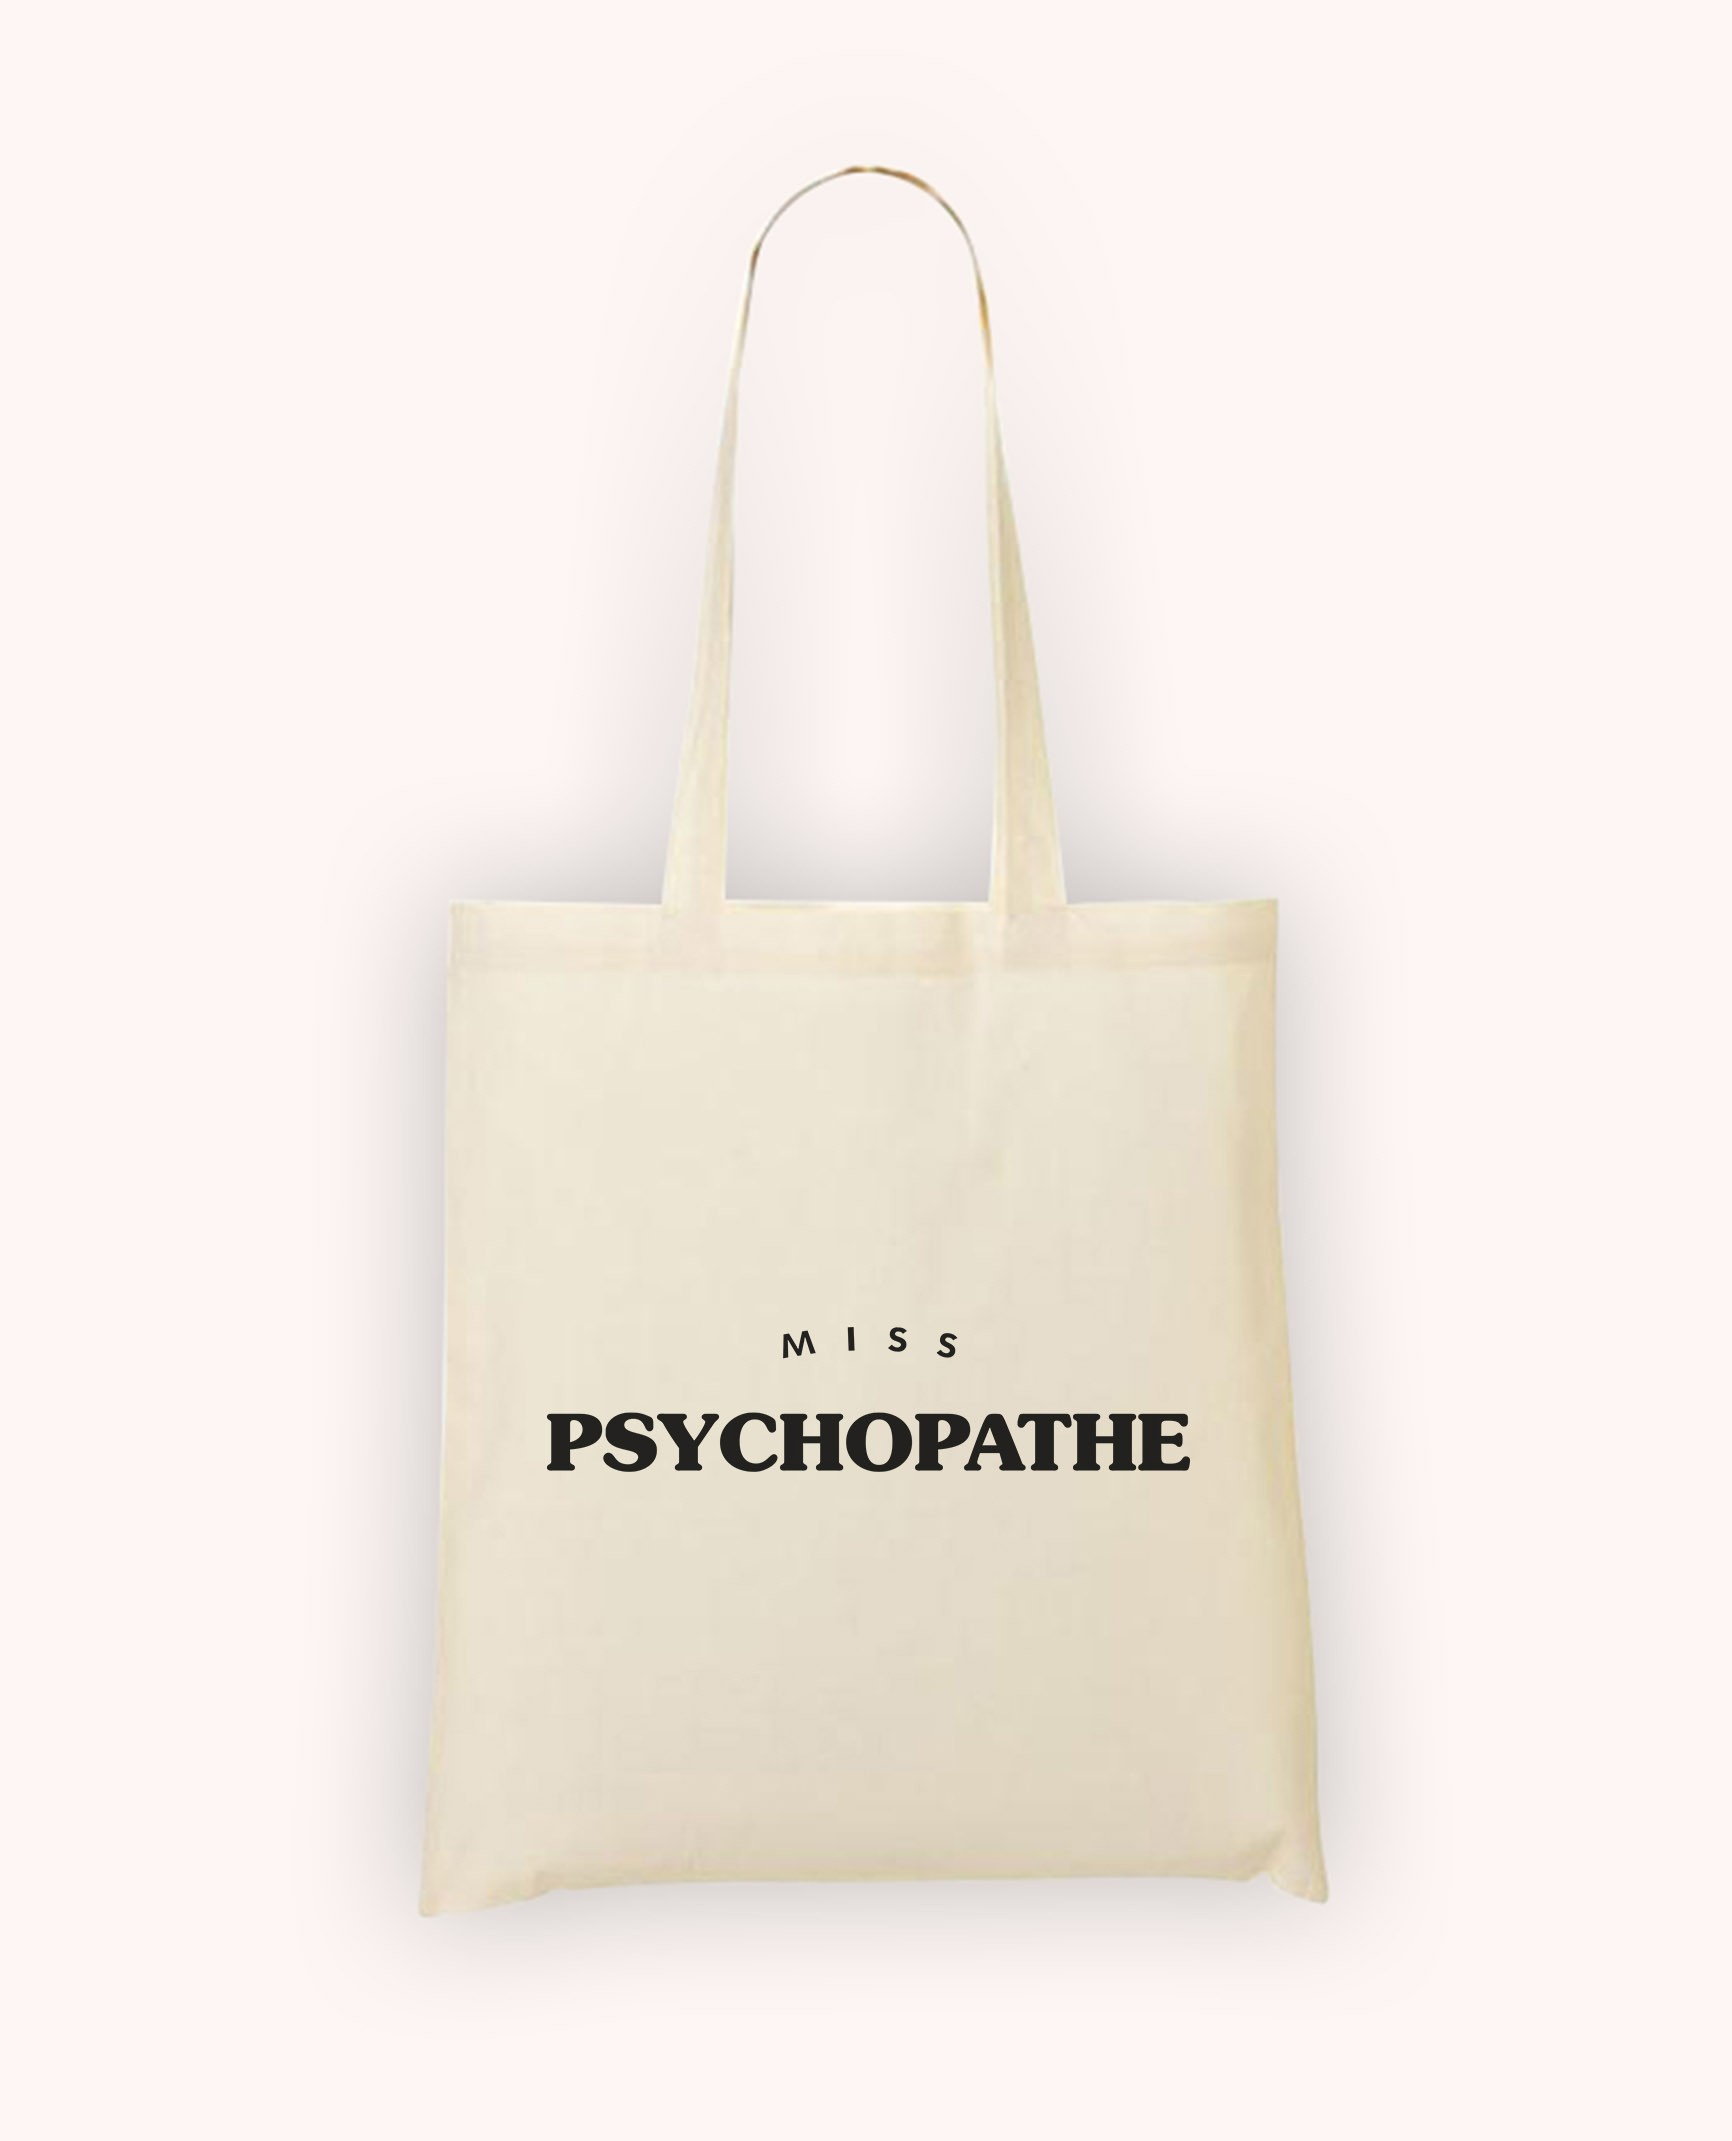 Totebag Miss Psychopathe